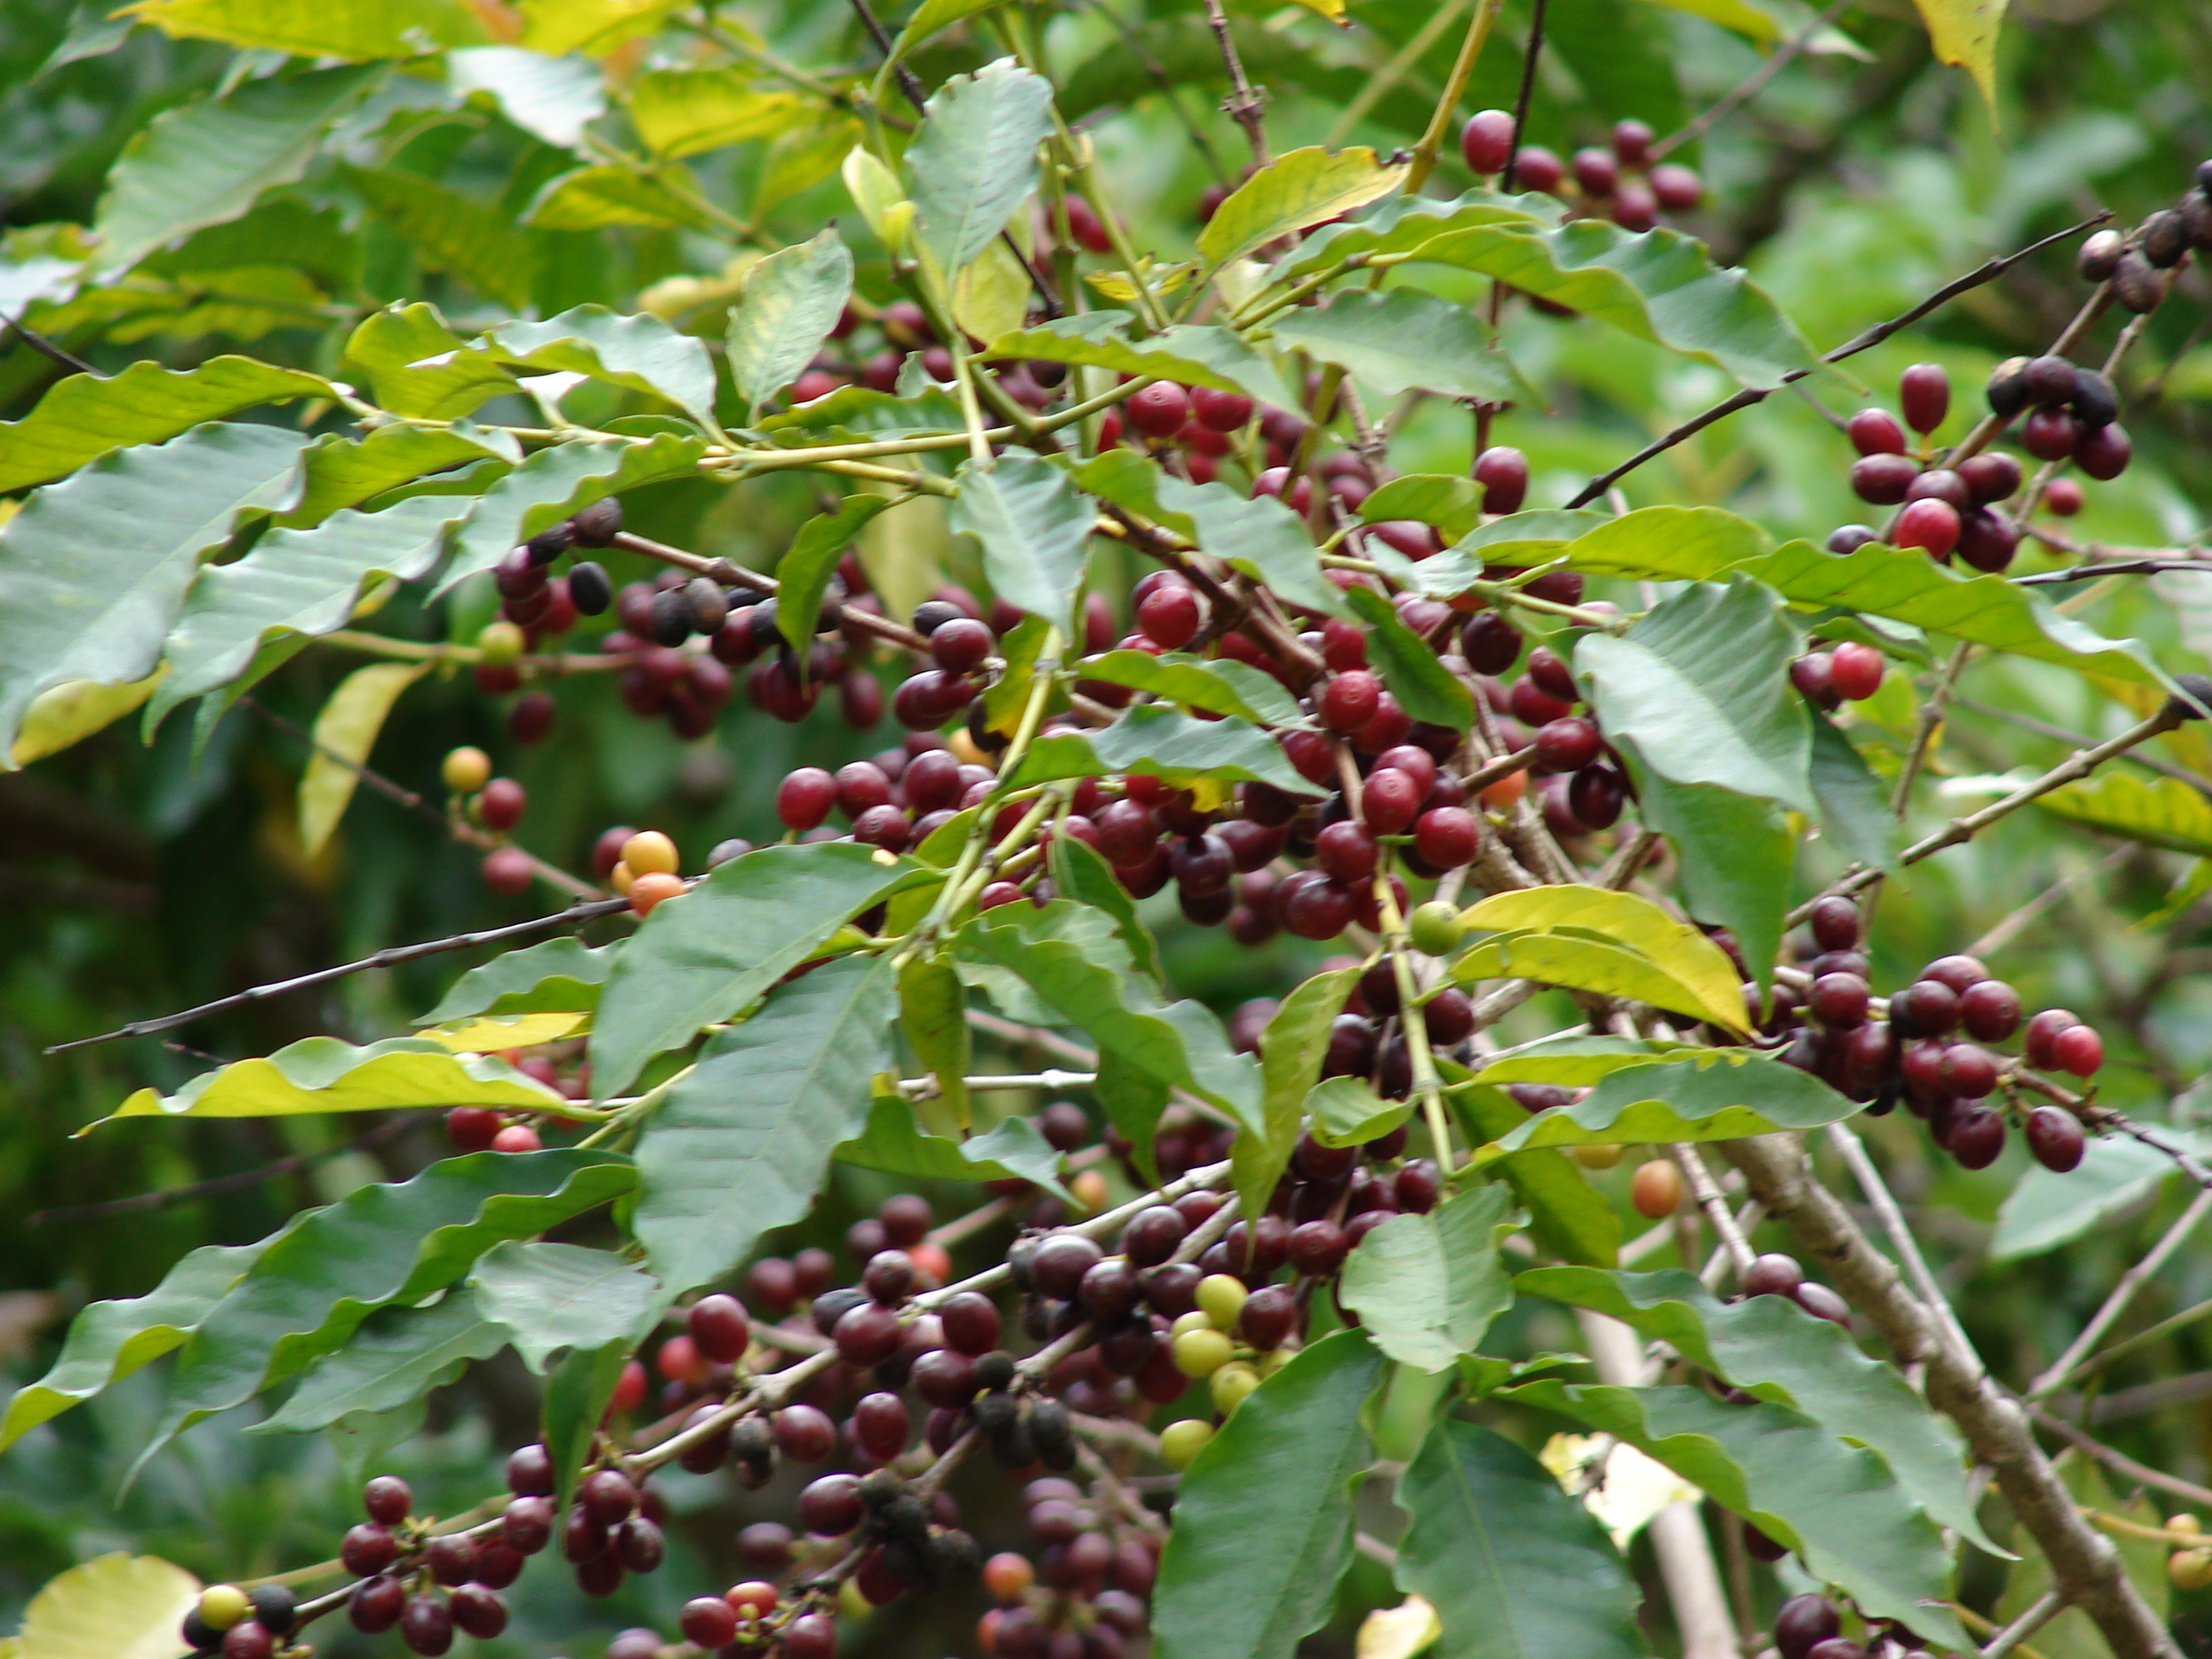 production of callus from coffea arabica Arabica vs robusta differences arabica vs robusta is a long going debate coffea arabica & coffea canephora or robusta are the two coffee species that farmers prefer cultivating.